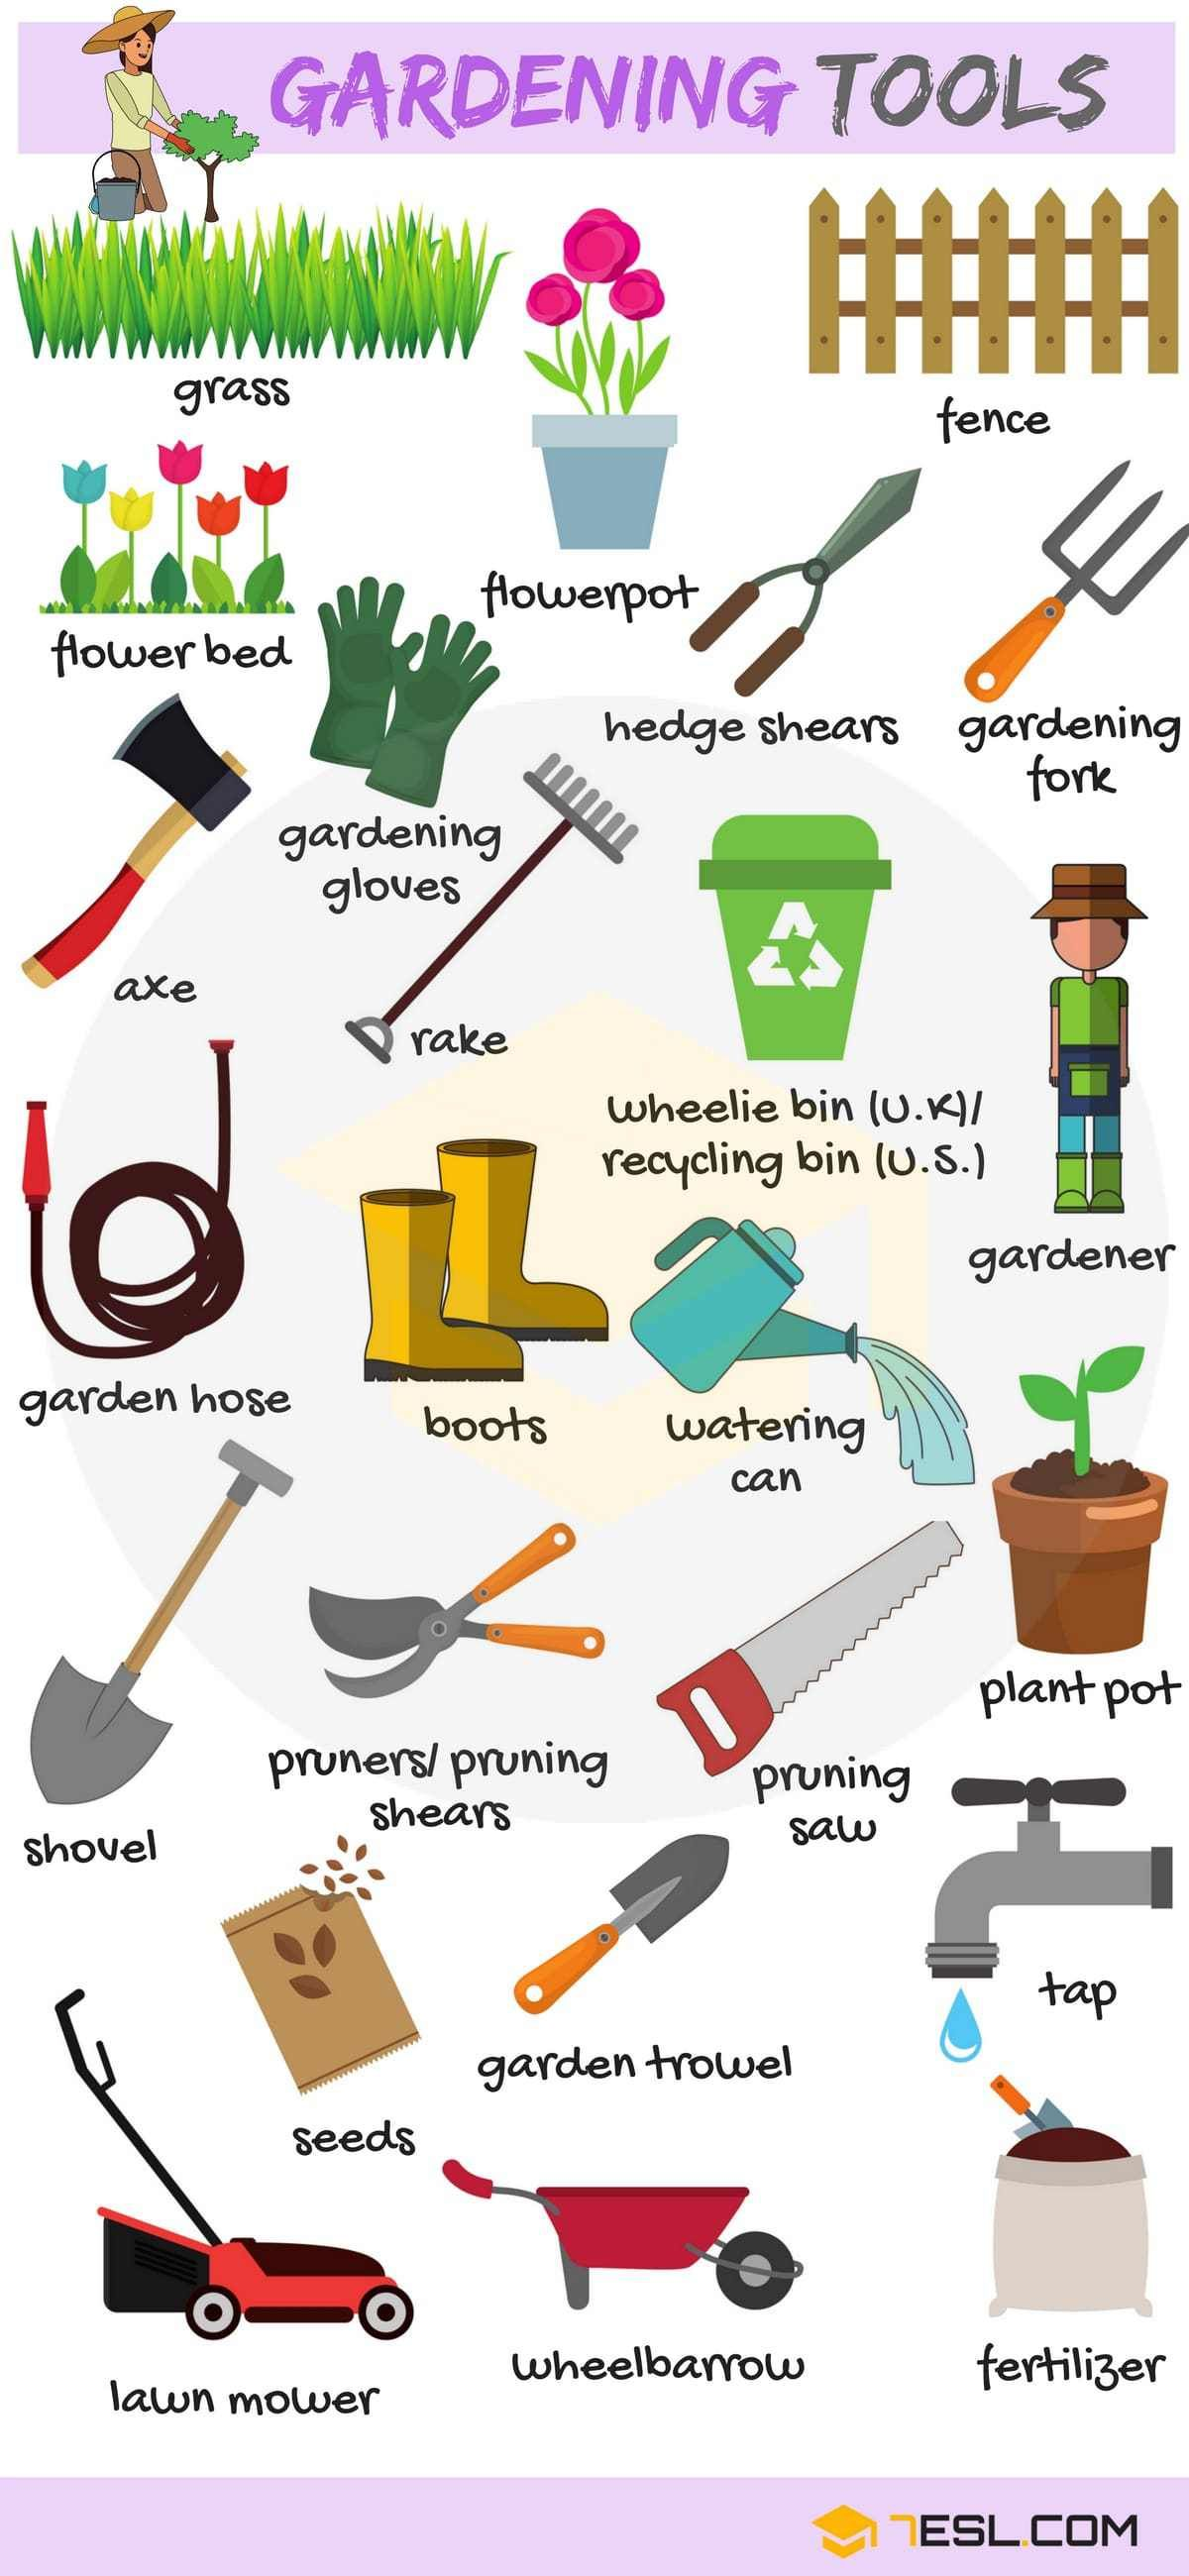 Learn Tools As You Put Them To Use In Projects: English Vocabulary: Learn Gardening Tools Through Pictures